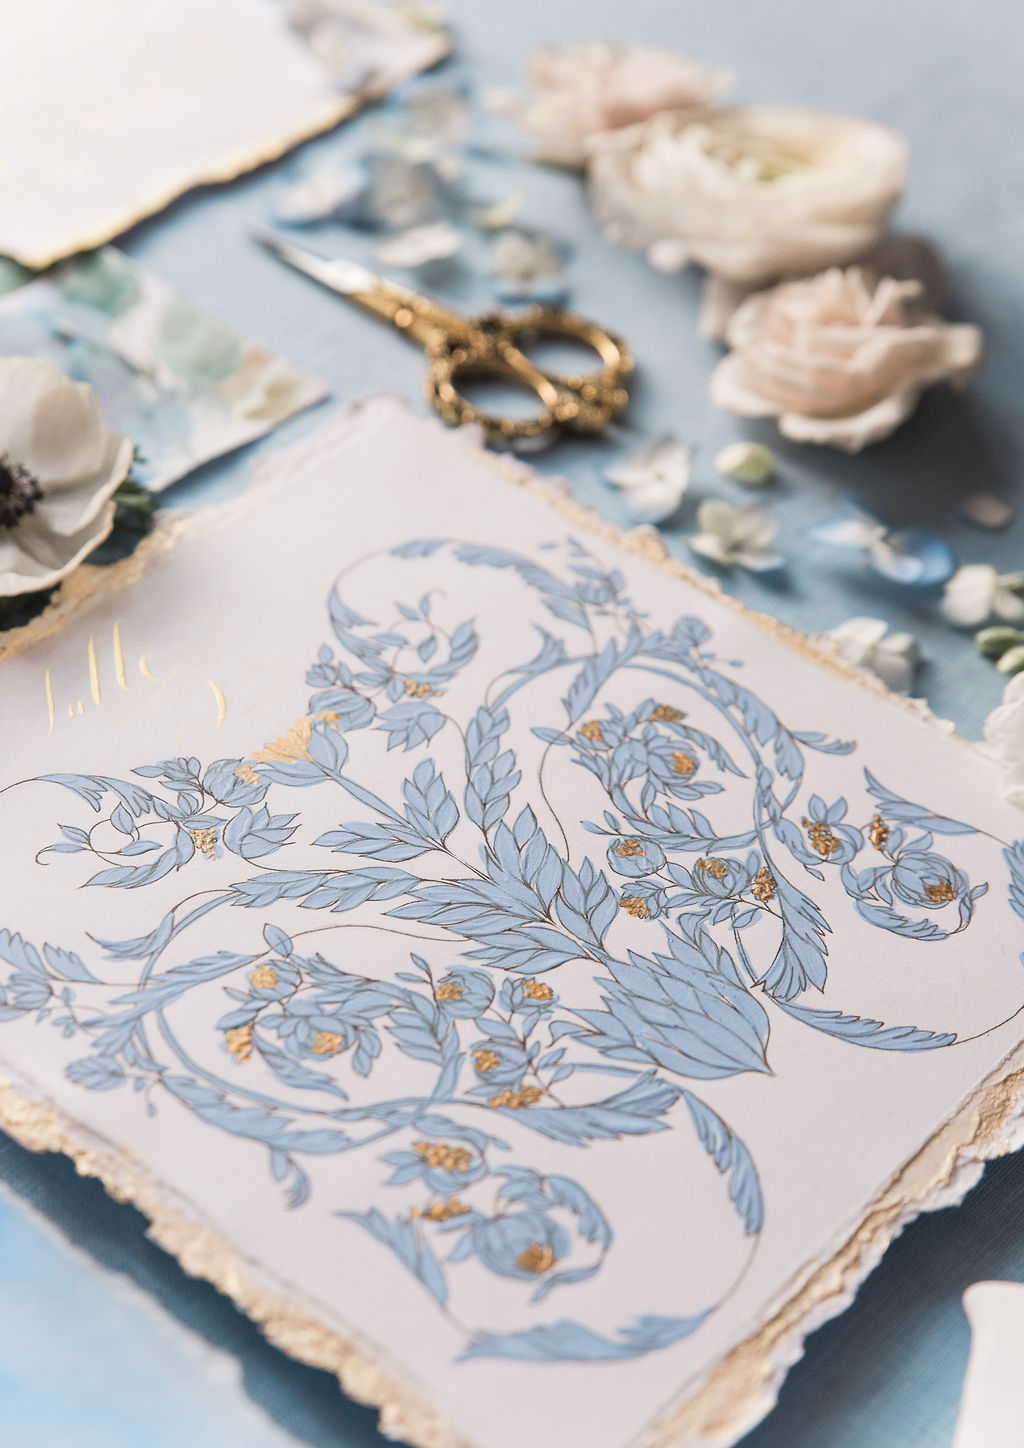 Blue and gold hand painted wedding stationery for a French destinationwedding. This image features a table number with creative floral designs, perfect for a high end wedding in Paris.